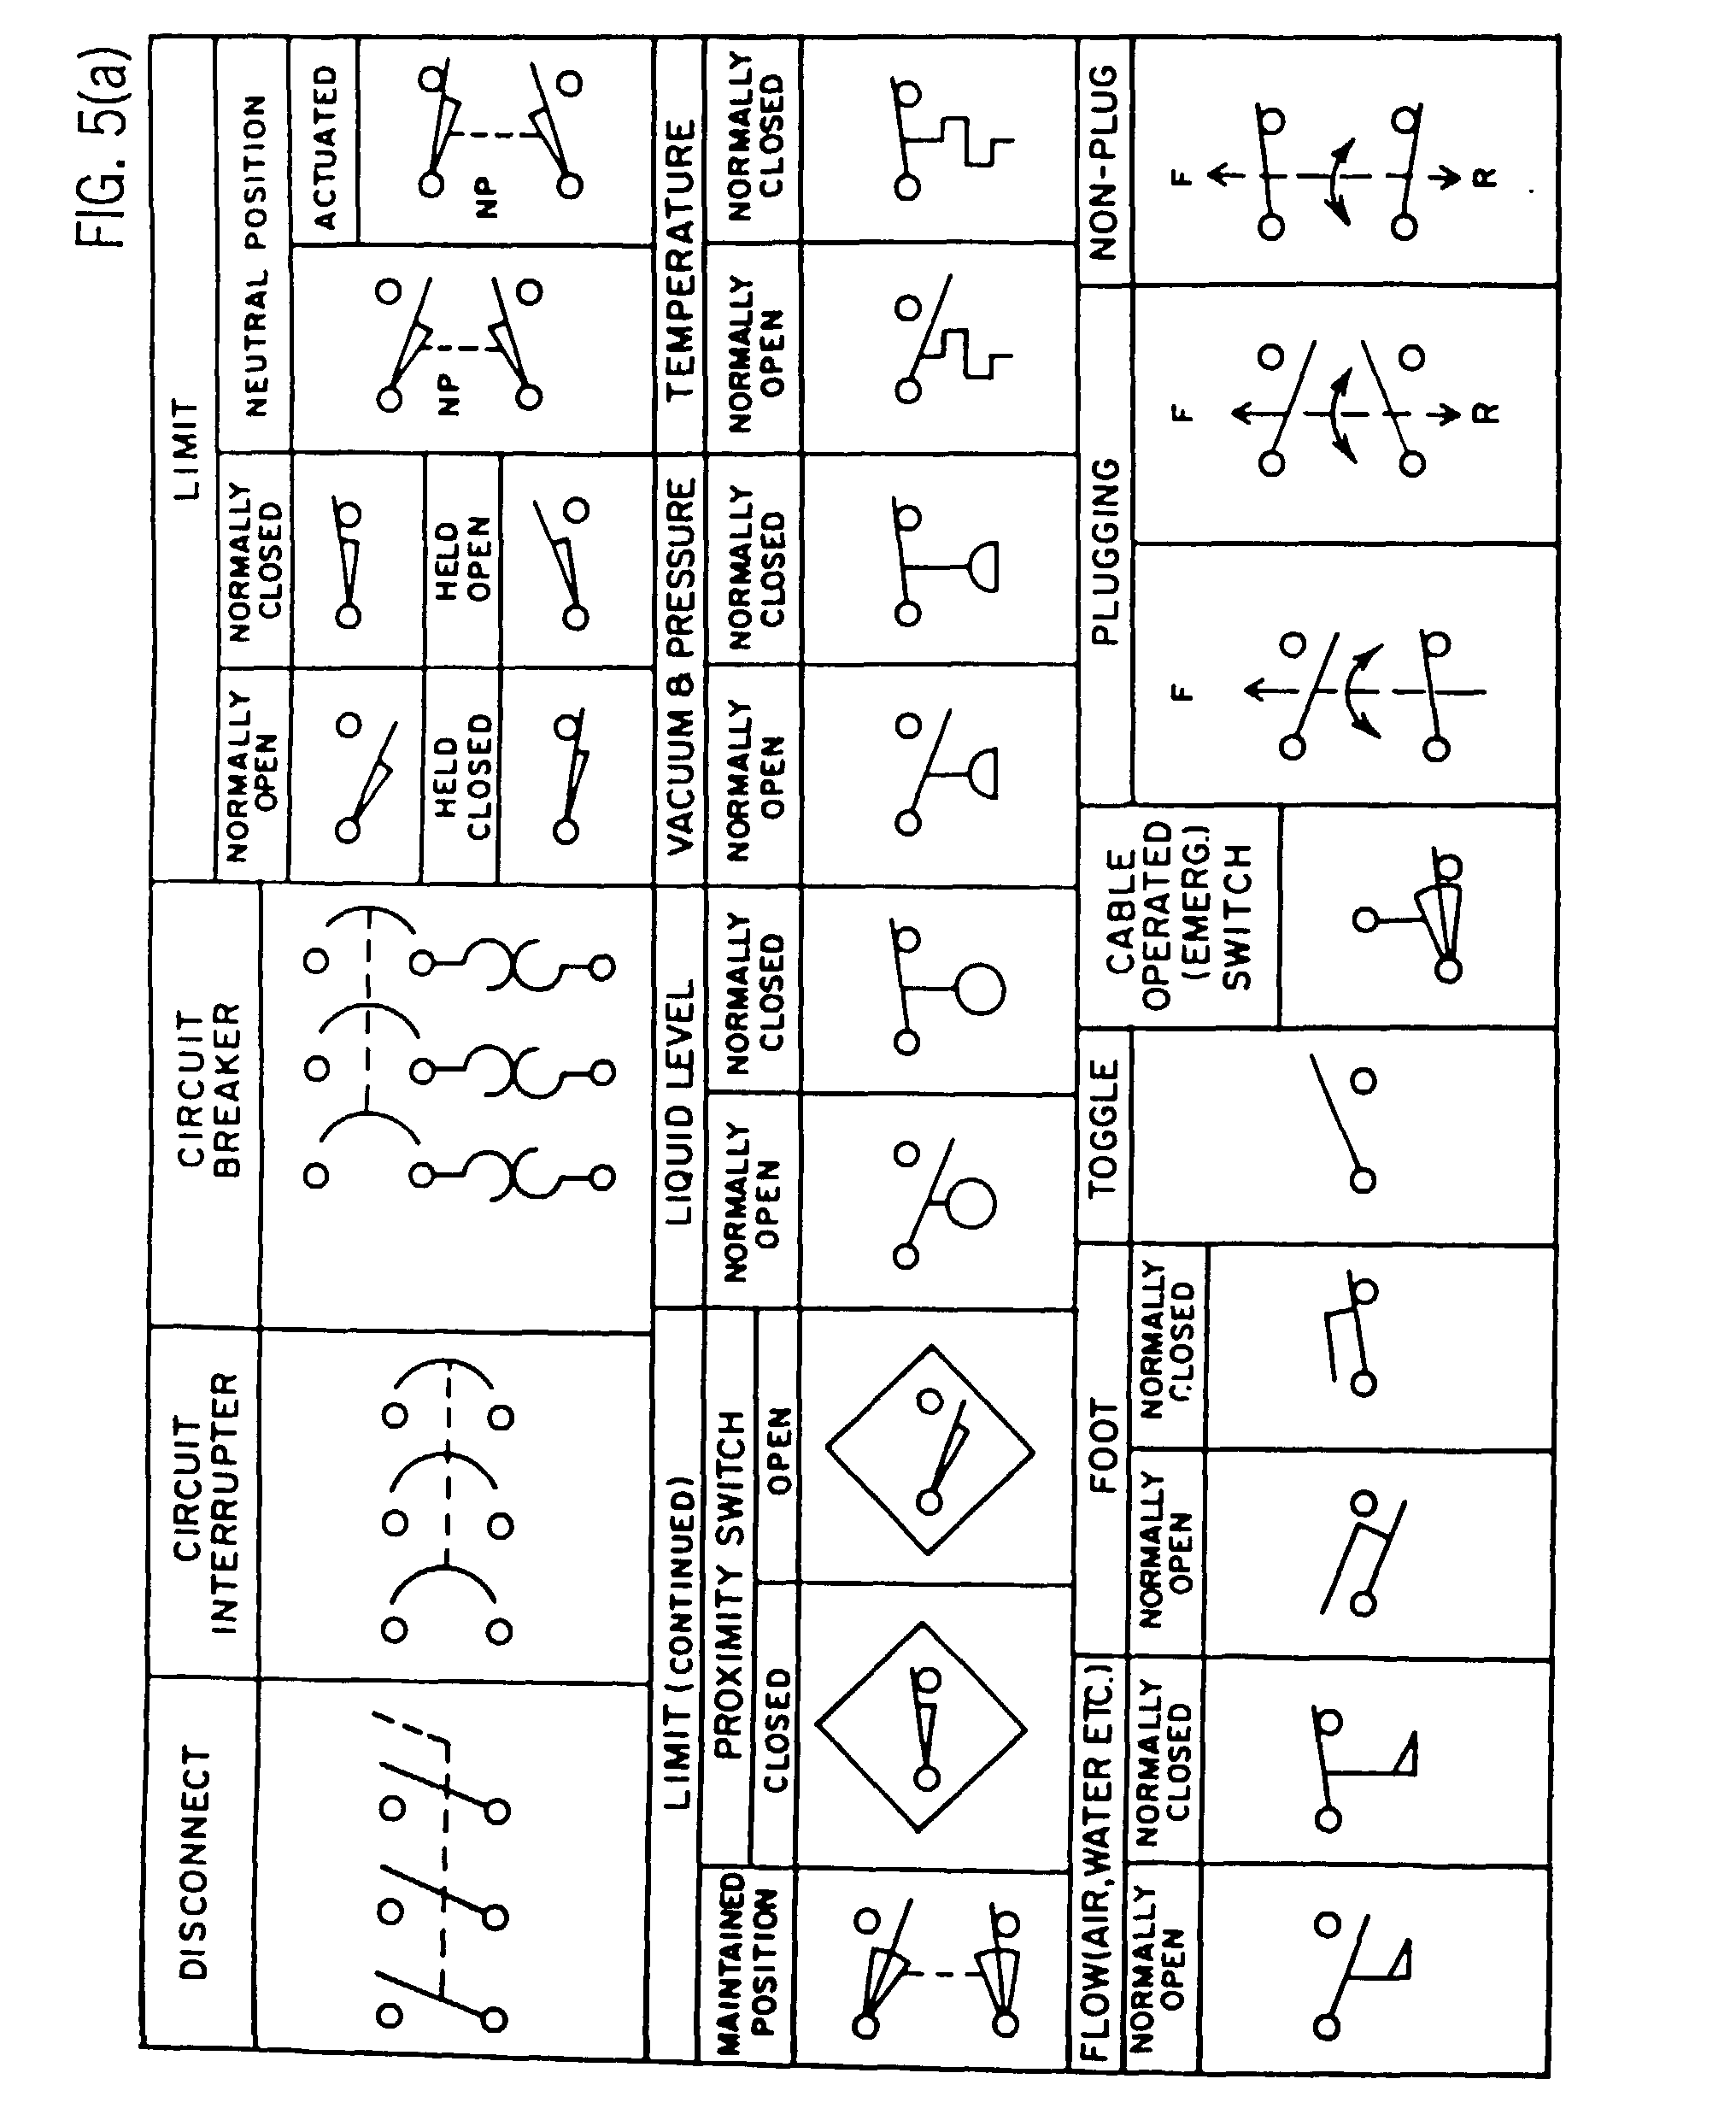 Twisted Pair Symbol Wiring Diagram 34 Images Circuit Breaker 01160001 Patent Ep0718727b1 Industrial Controllers With Highly At